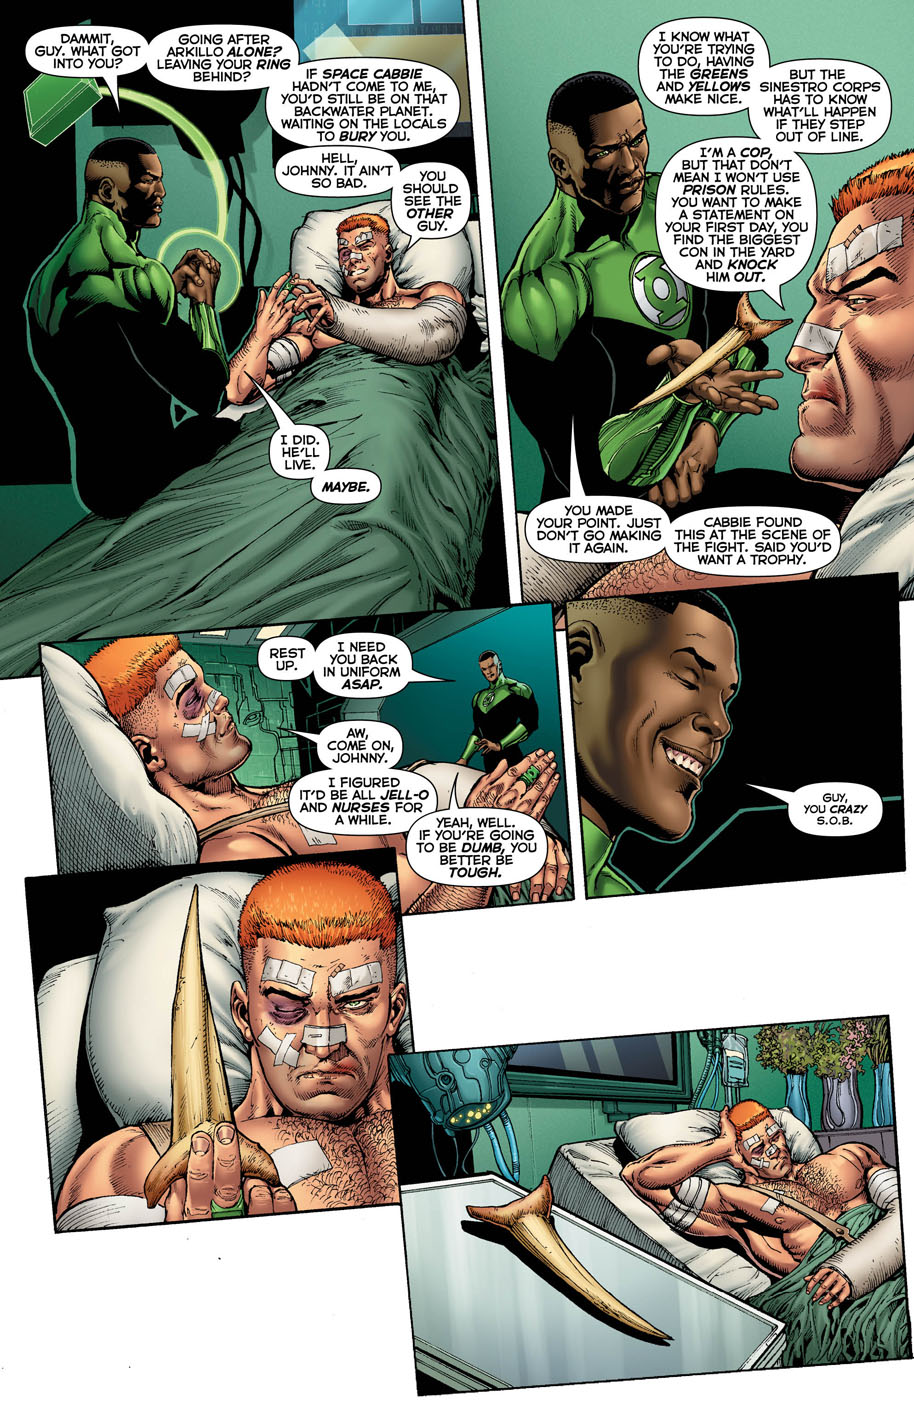 Hal Jordan and the Green Lantern Corps 17 page 4